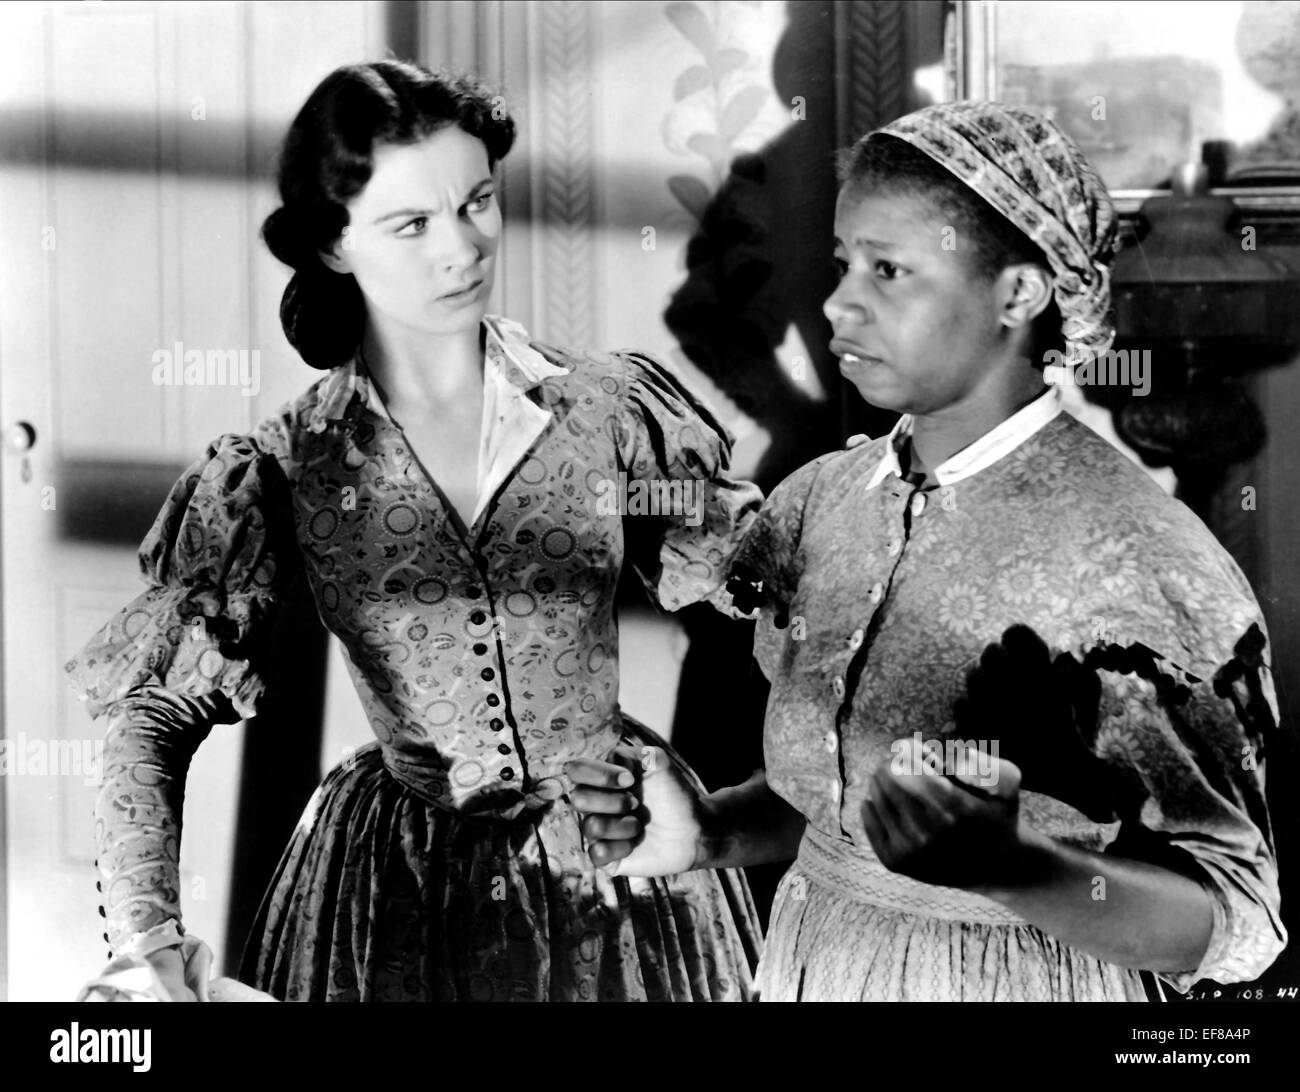 Communication on this topic: Hannah Monson, butterfly-mcqueen/